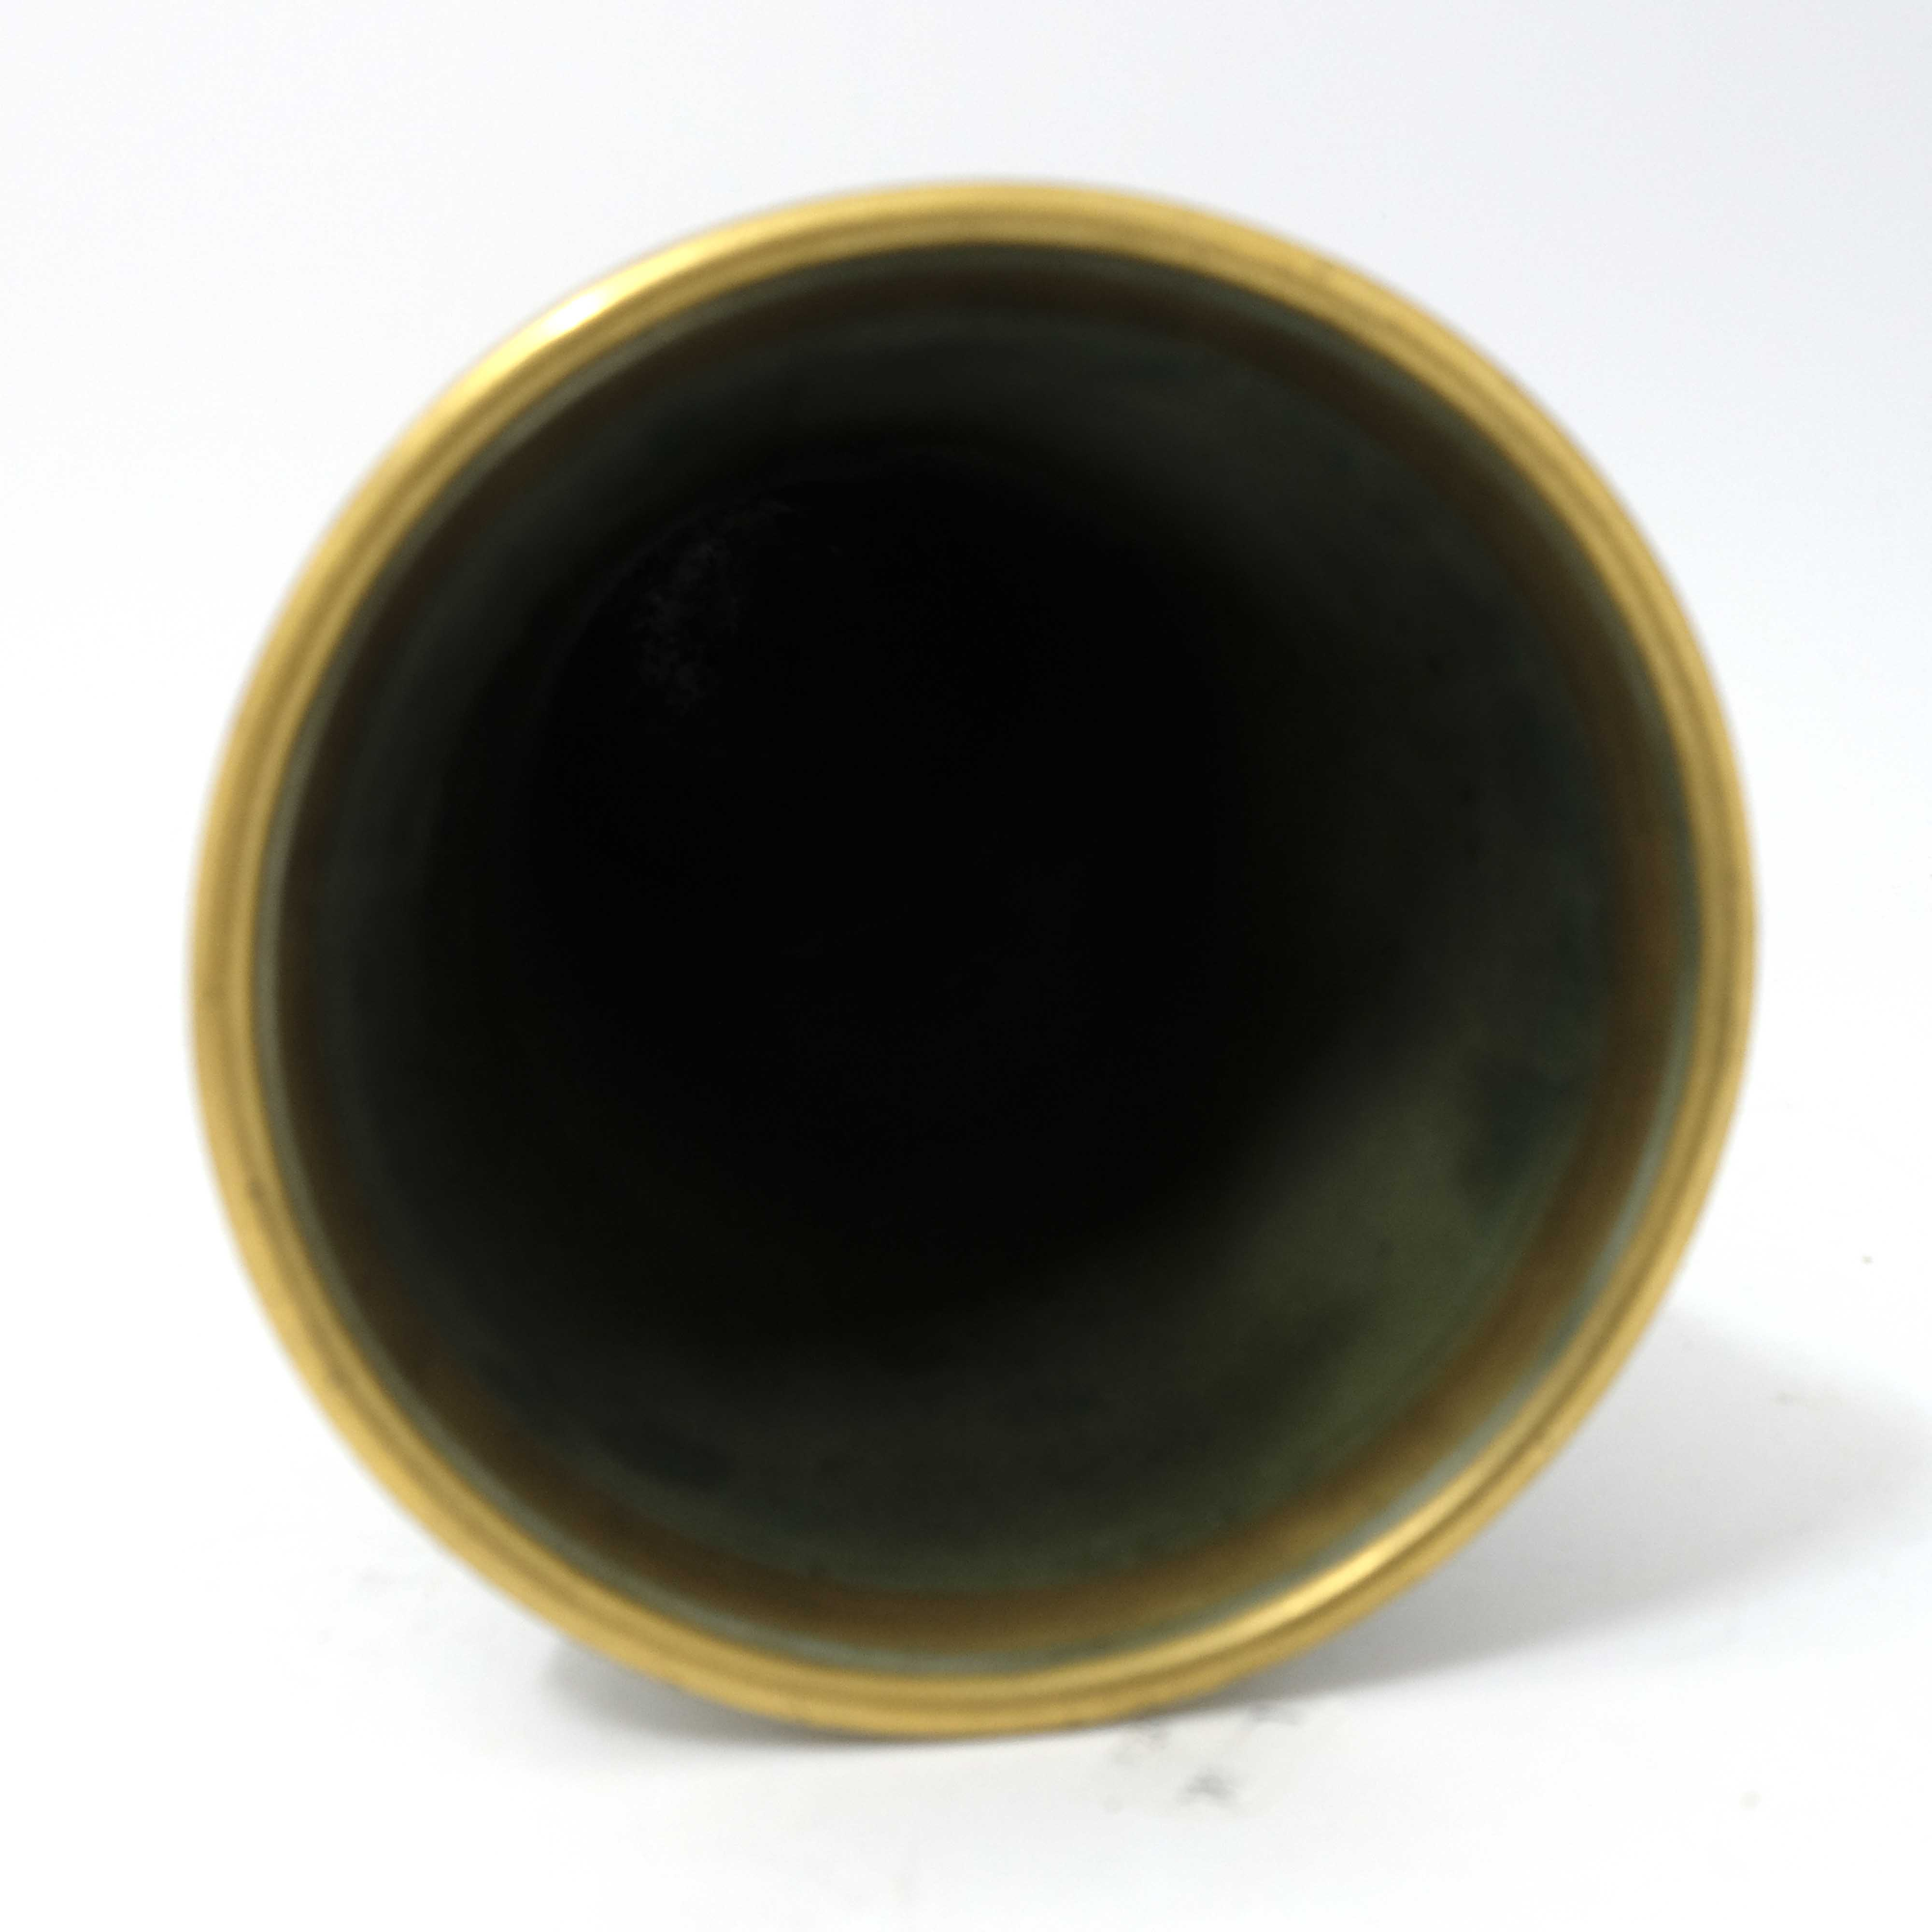 Harry Allen for Royal Doulton, a very large Titani - Image 4 of 5